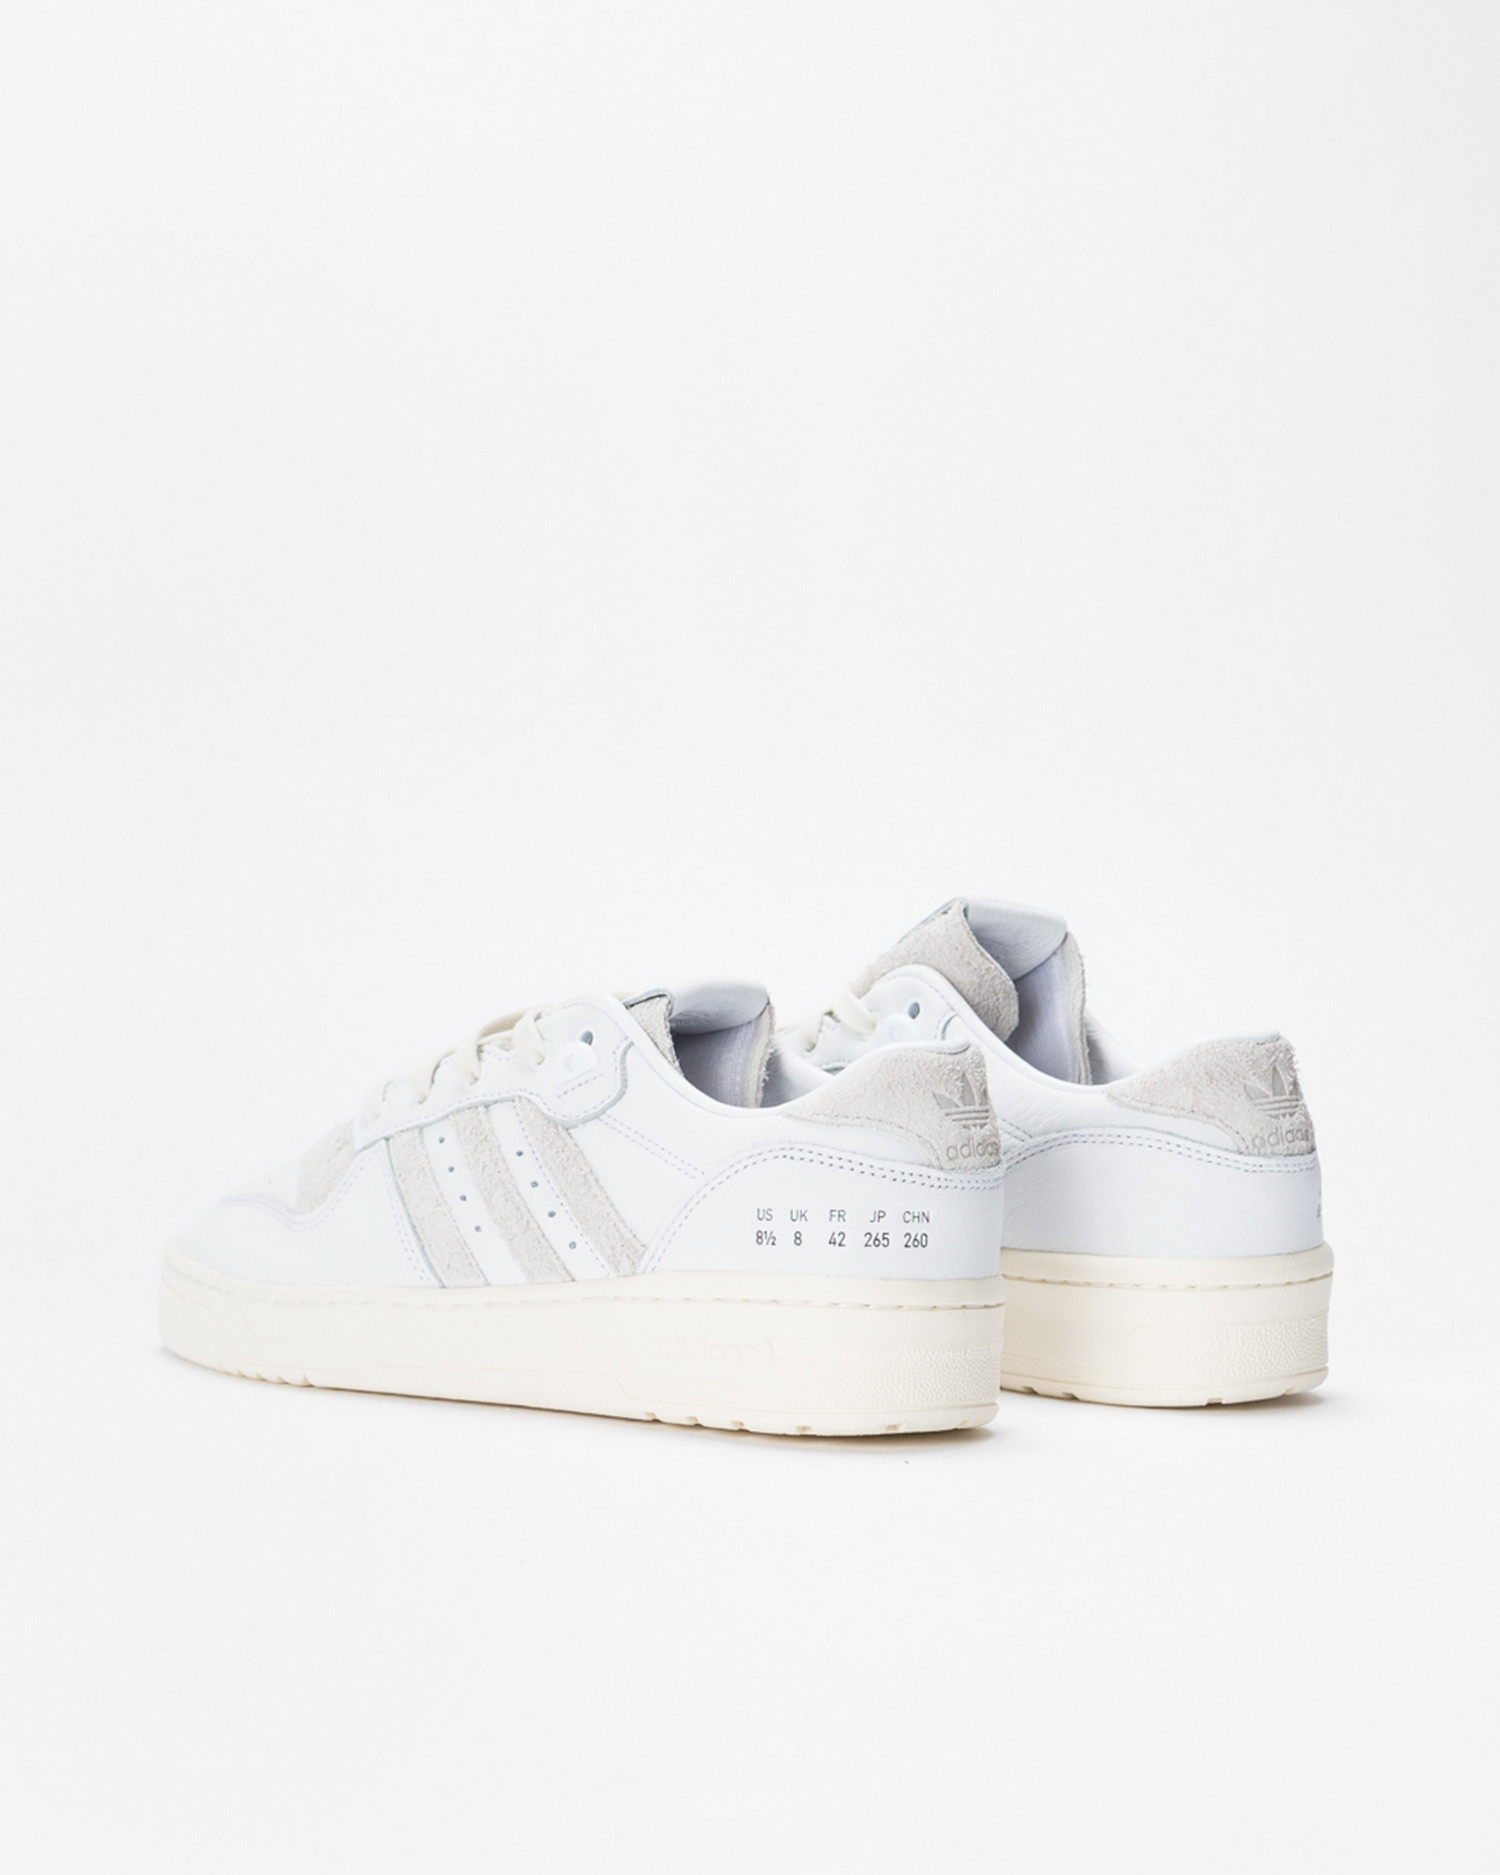 Adidas Rivalry Low Cloud White/Crystal White/Off White